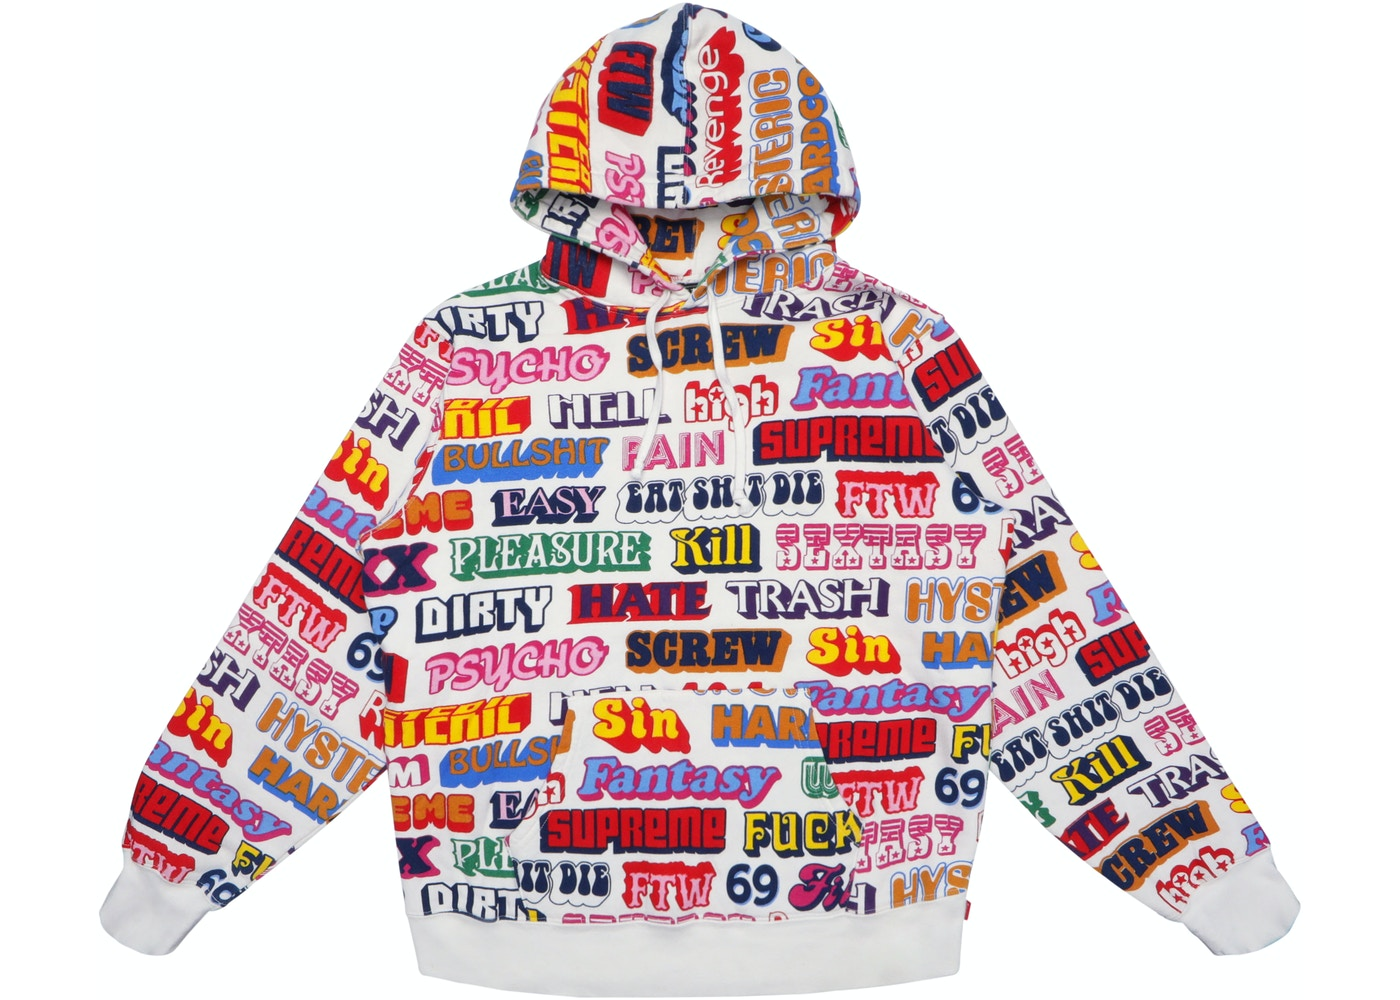 b8d8e07618a1 Supreme Hysteric Glamour Text Hoodie White - FW17